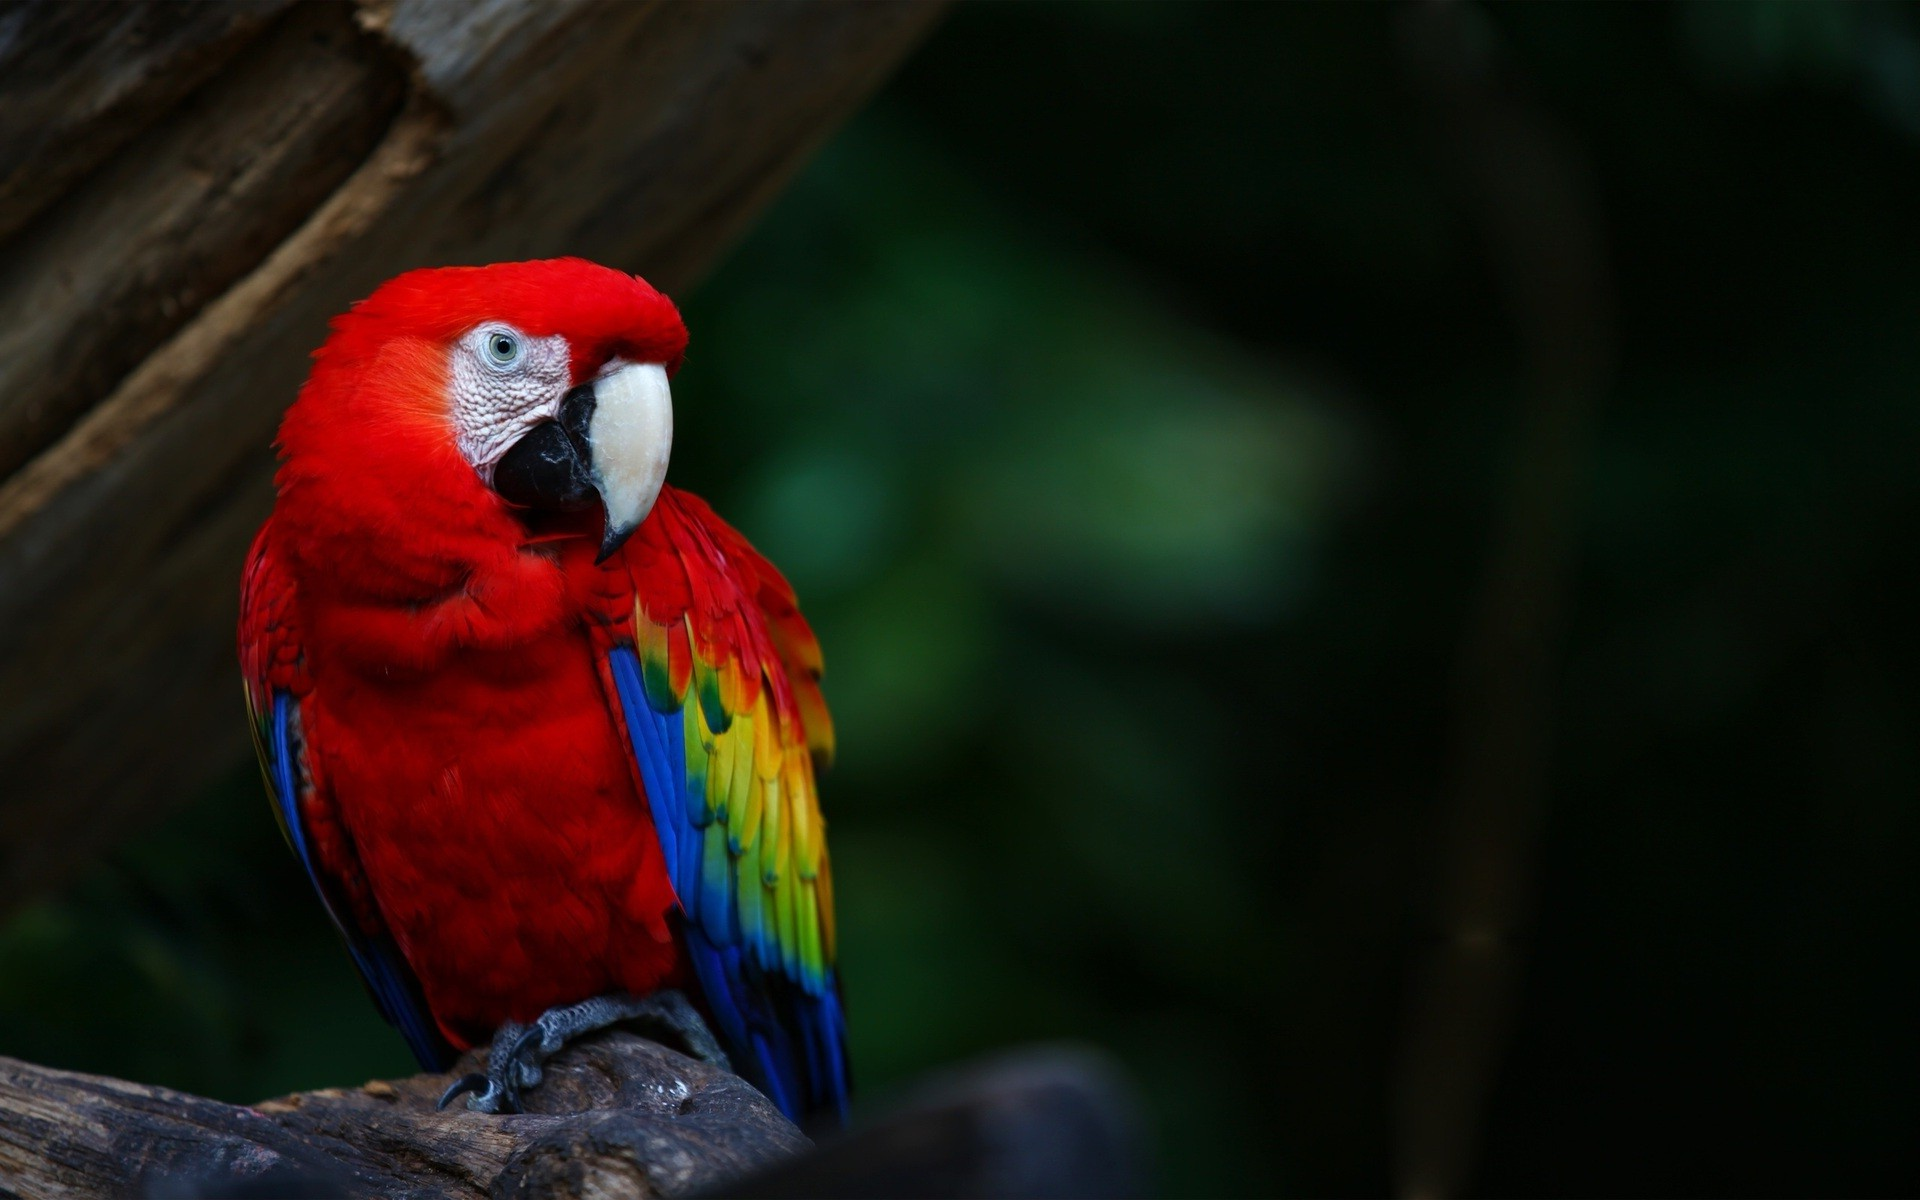 Cute Parakeet Wallpaper Animals Wildlife Nature Birds Macaws Parrot